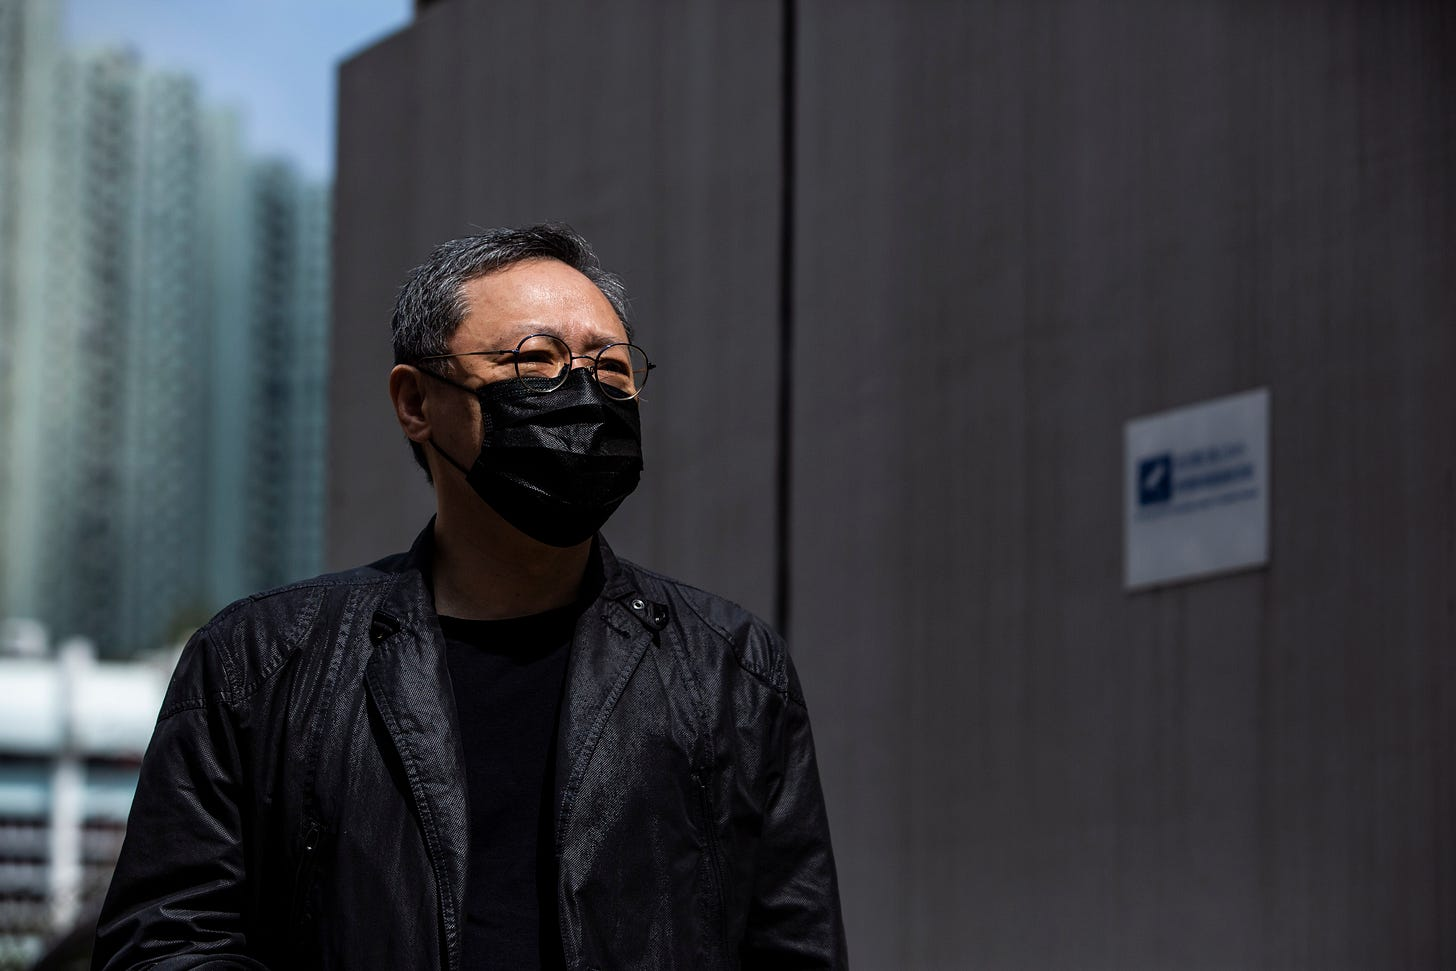 """Hong Kong law professor and pro-democracy activist Benny Tai arrives at Ma On Shan police station in Hong Kong on February 28, 2021, where he and 46 other dissidents were each charged with one count of """"conspiracy to commit subversion"""" under the city's new national security law. (Photo by ISAAC LAWRENCE / AFP) (Photo by ISAAC LAWRENCE/AFP via Getty Images)"""